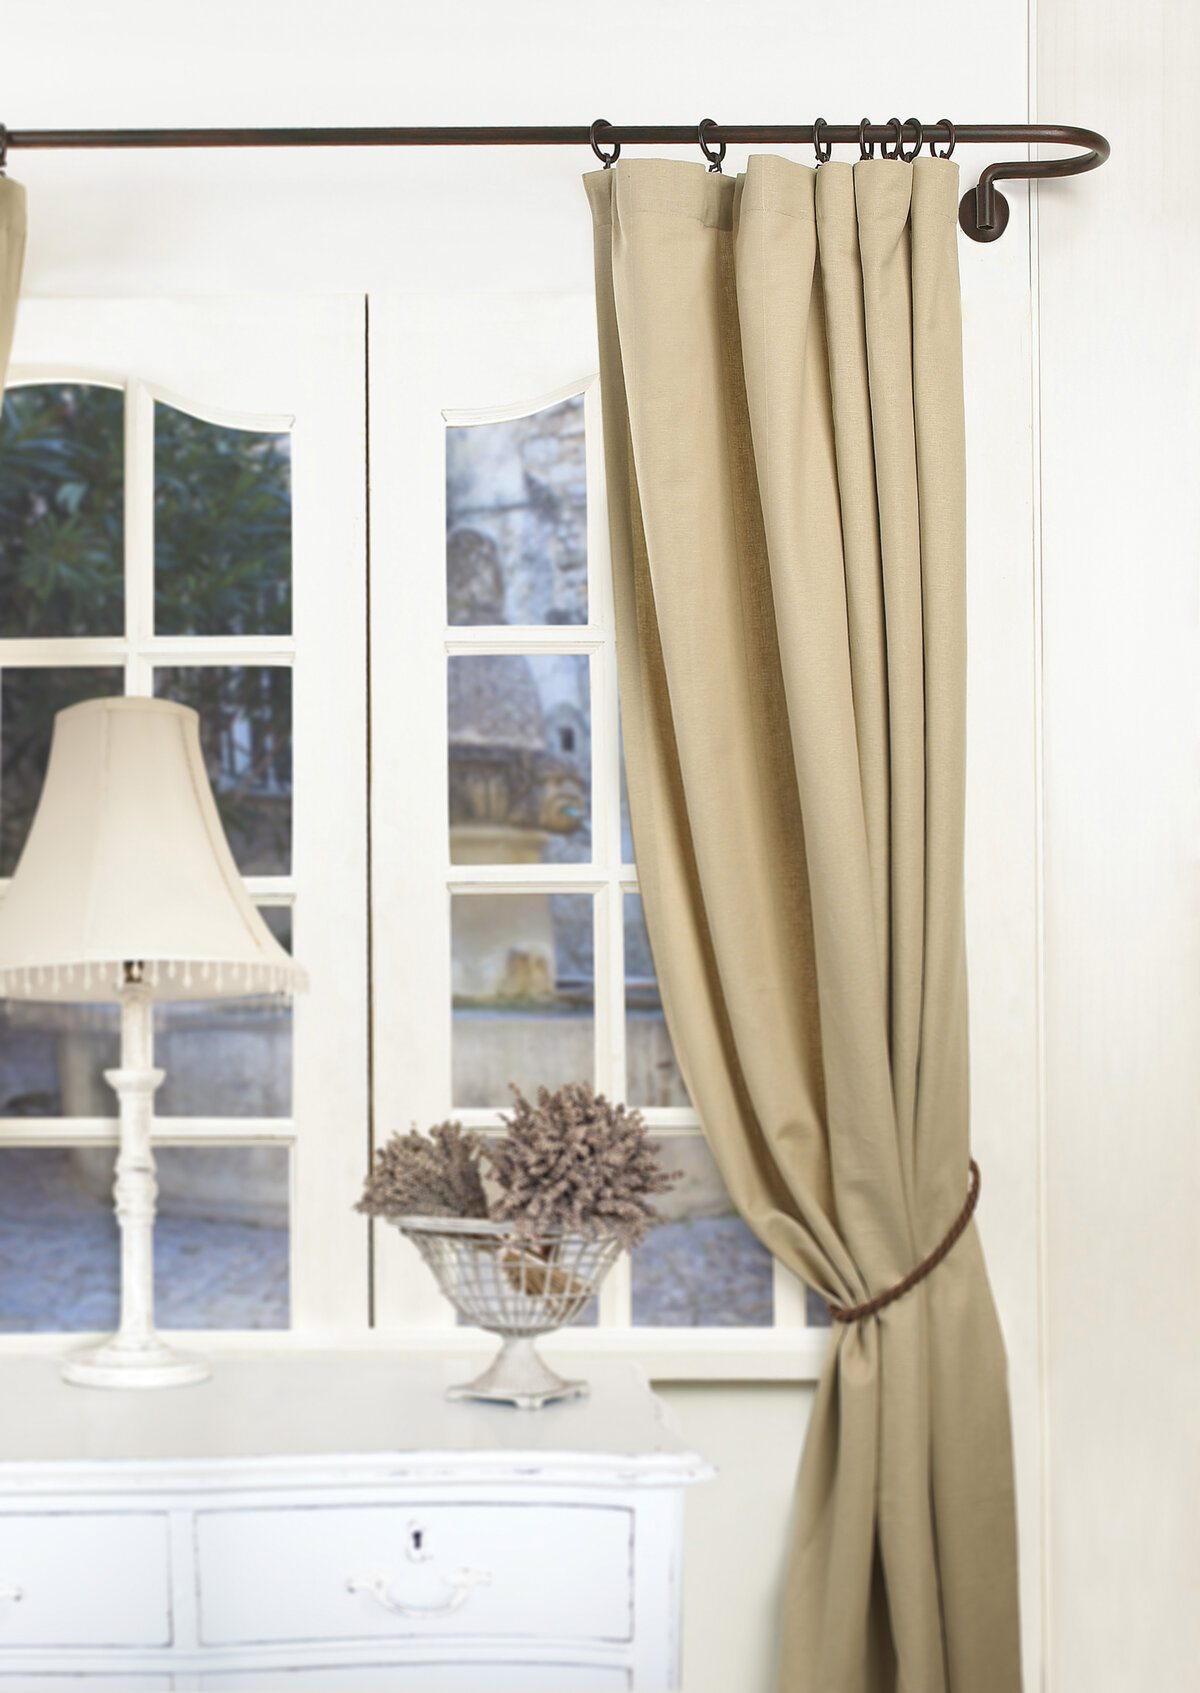 Classic room atmosphere with white sash window and pastel colored curtain